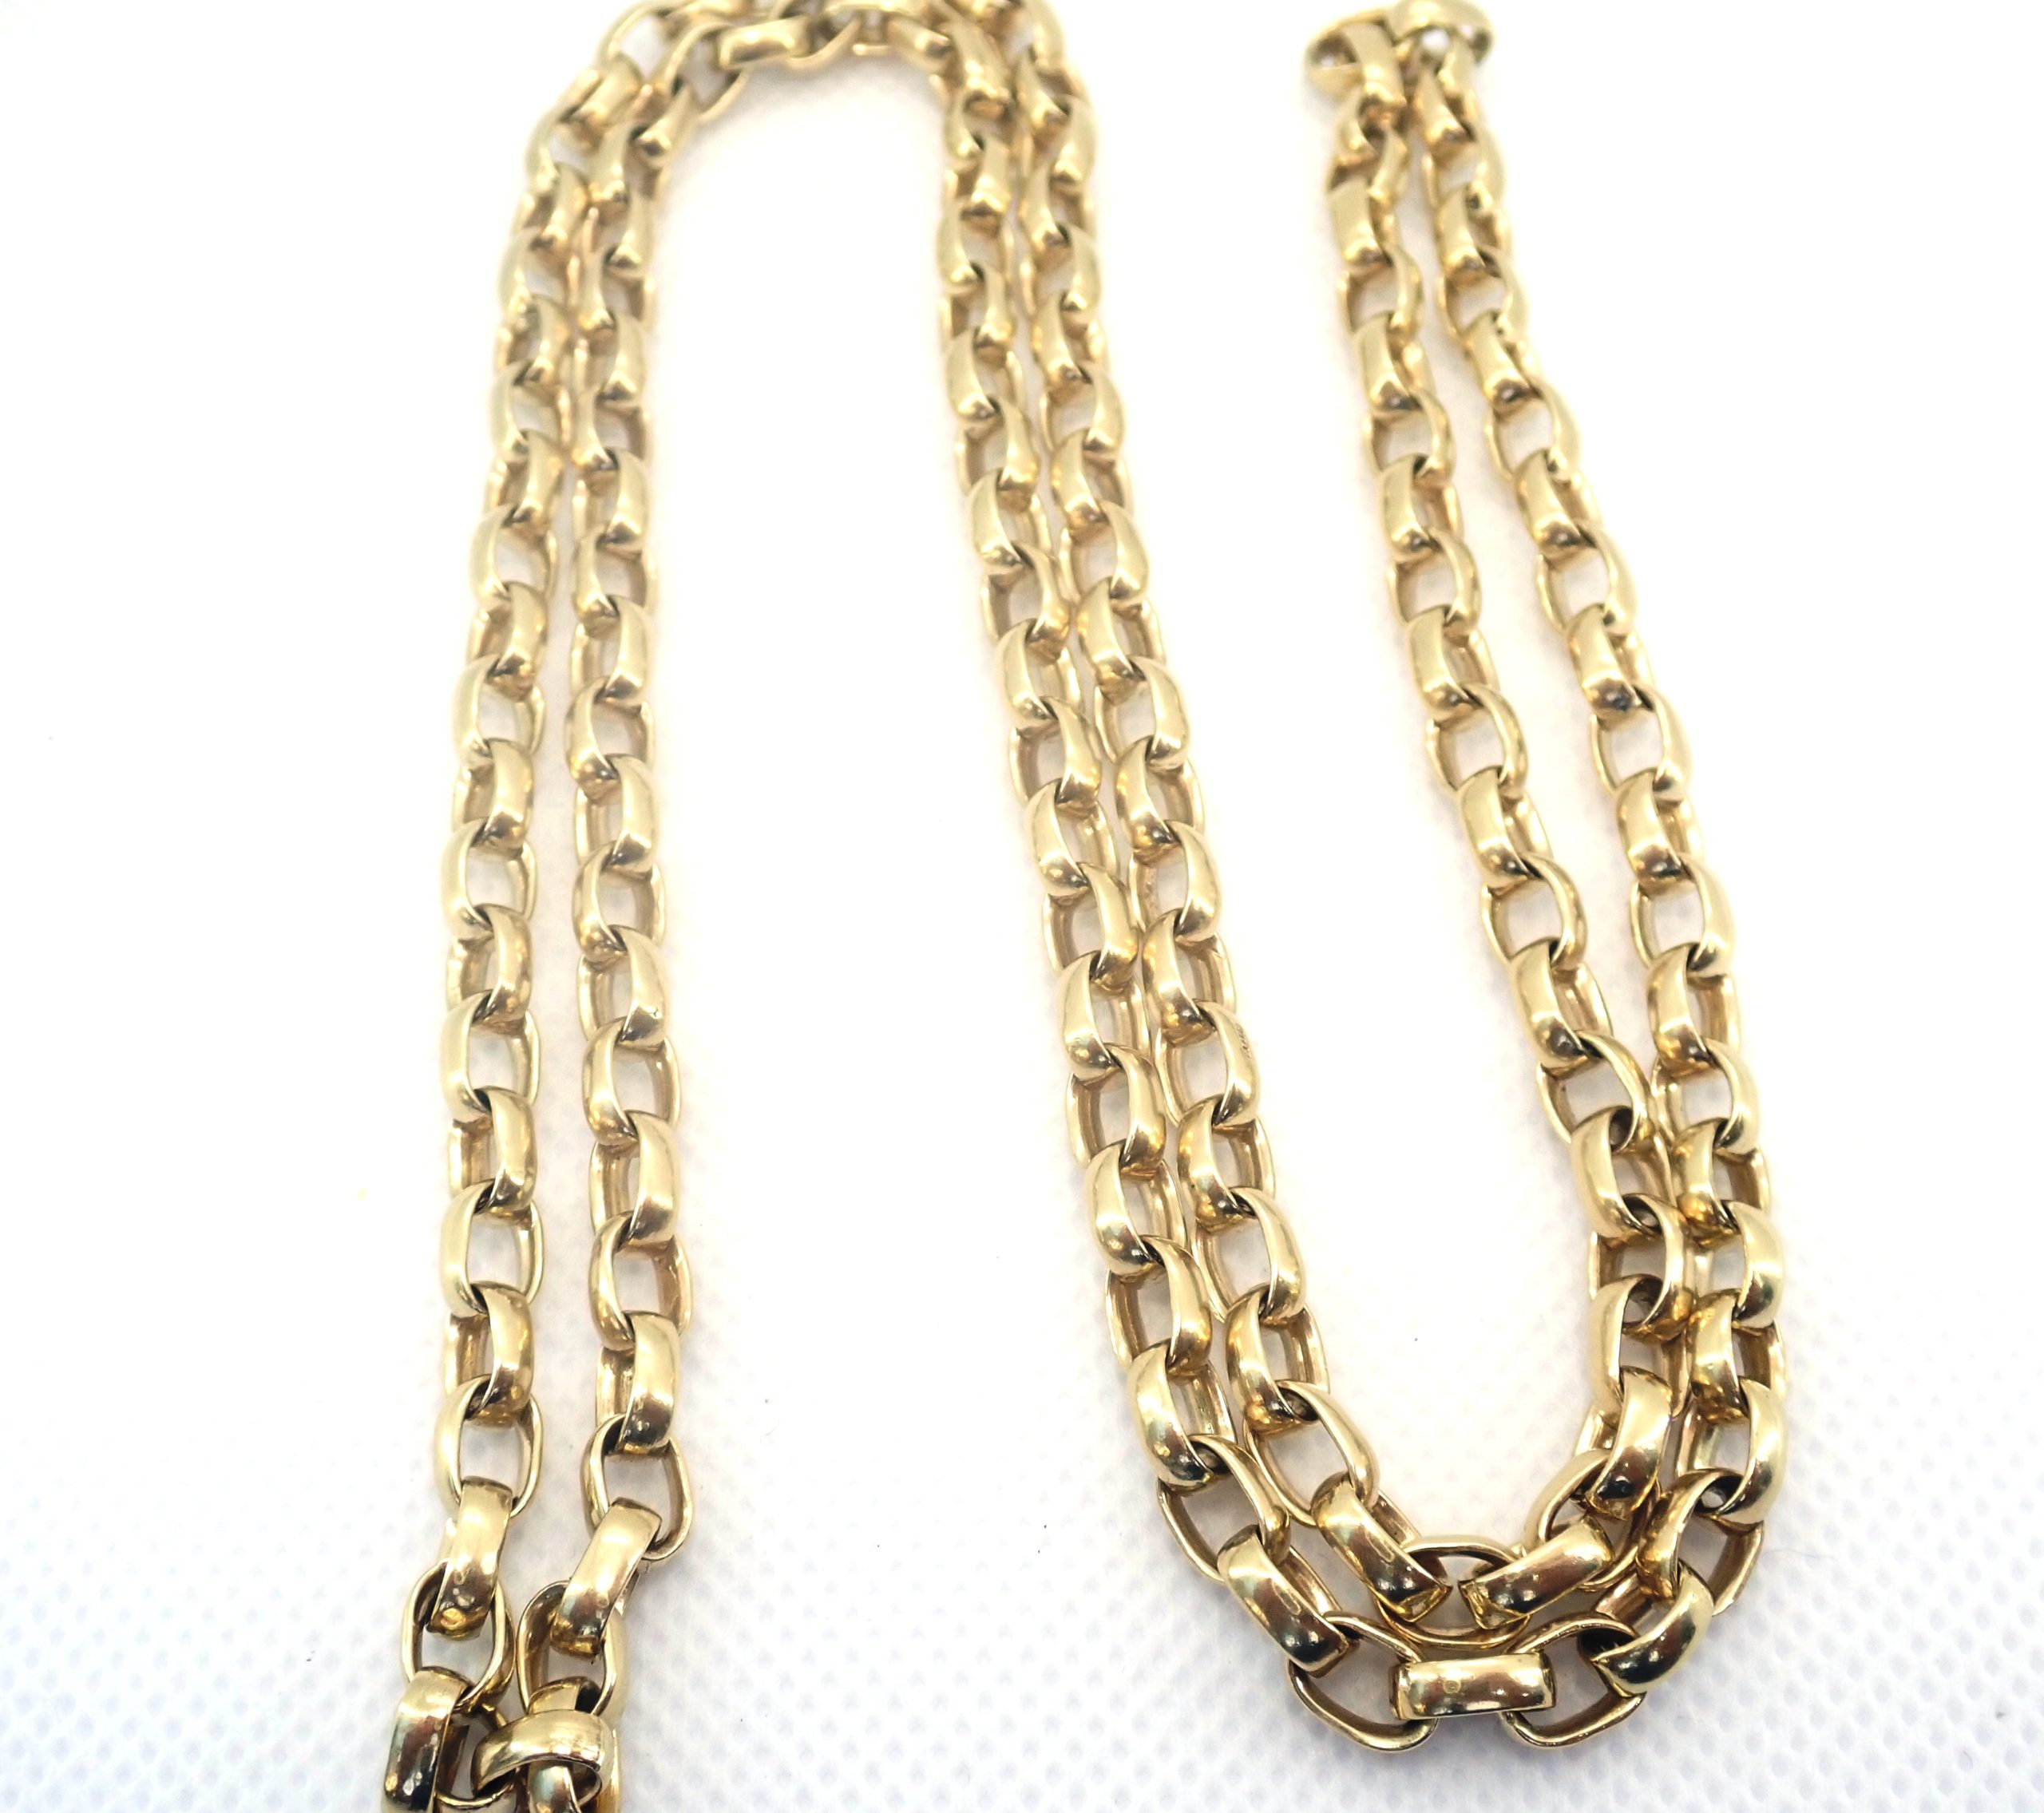 9ct Yellow Gold Belcher Rolo chain 51gms 28 Inch #0201